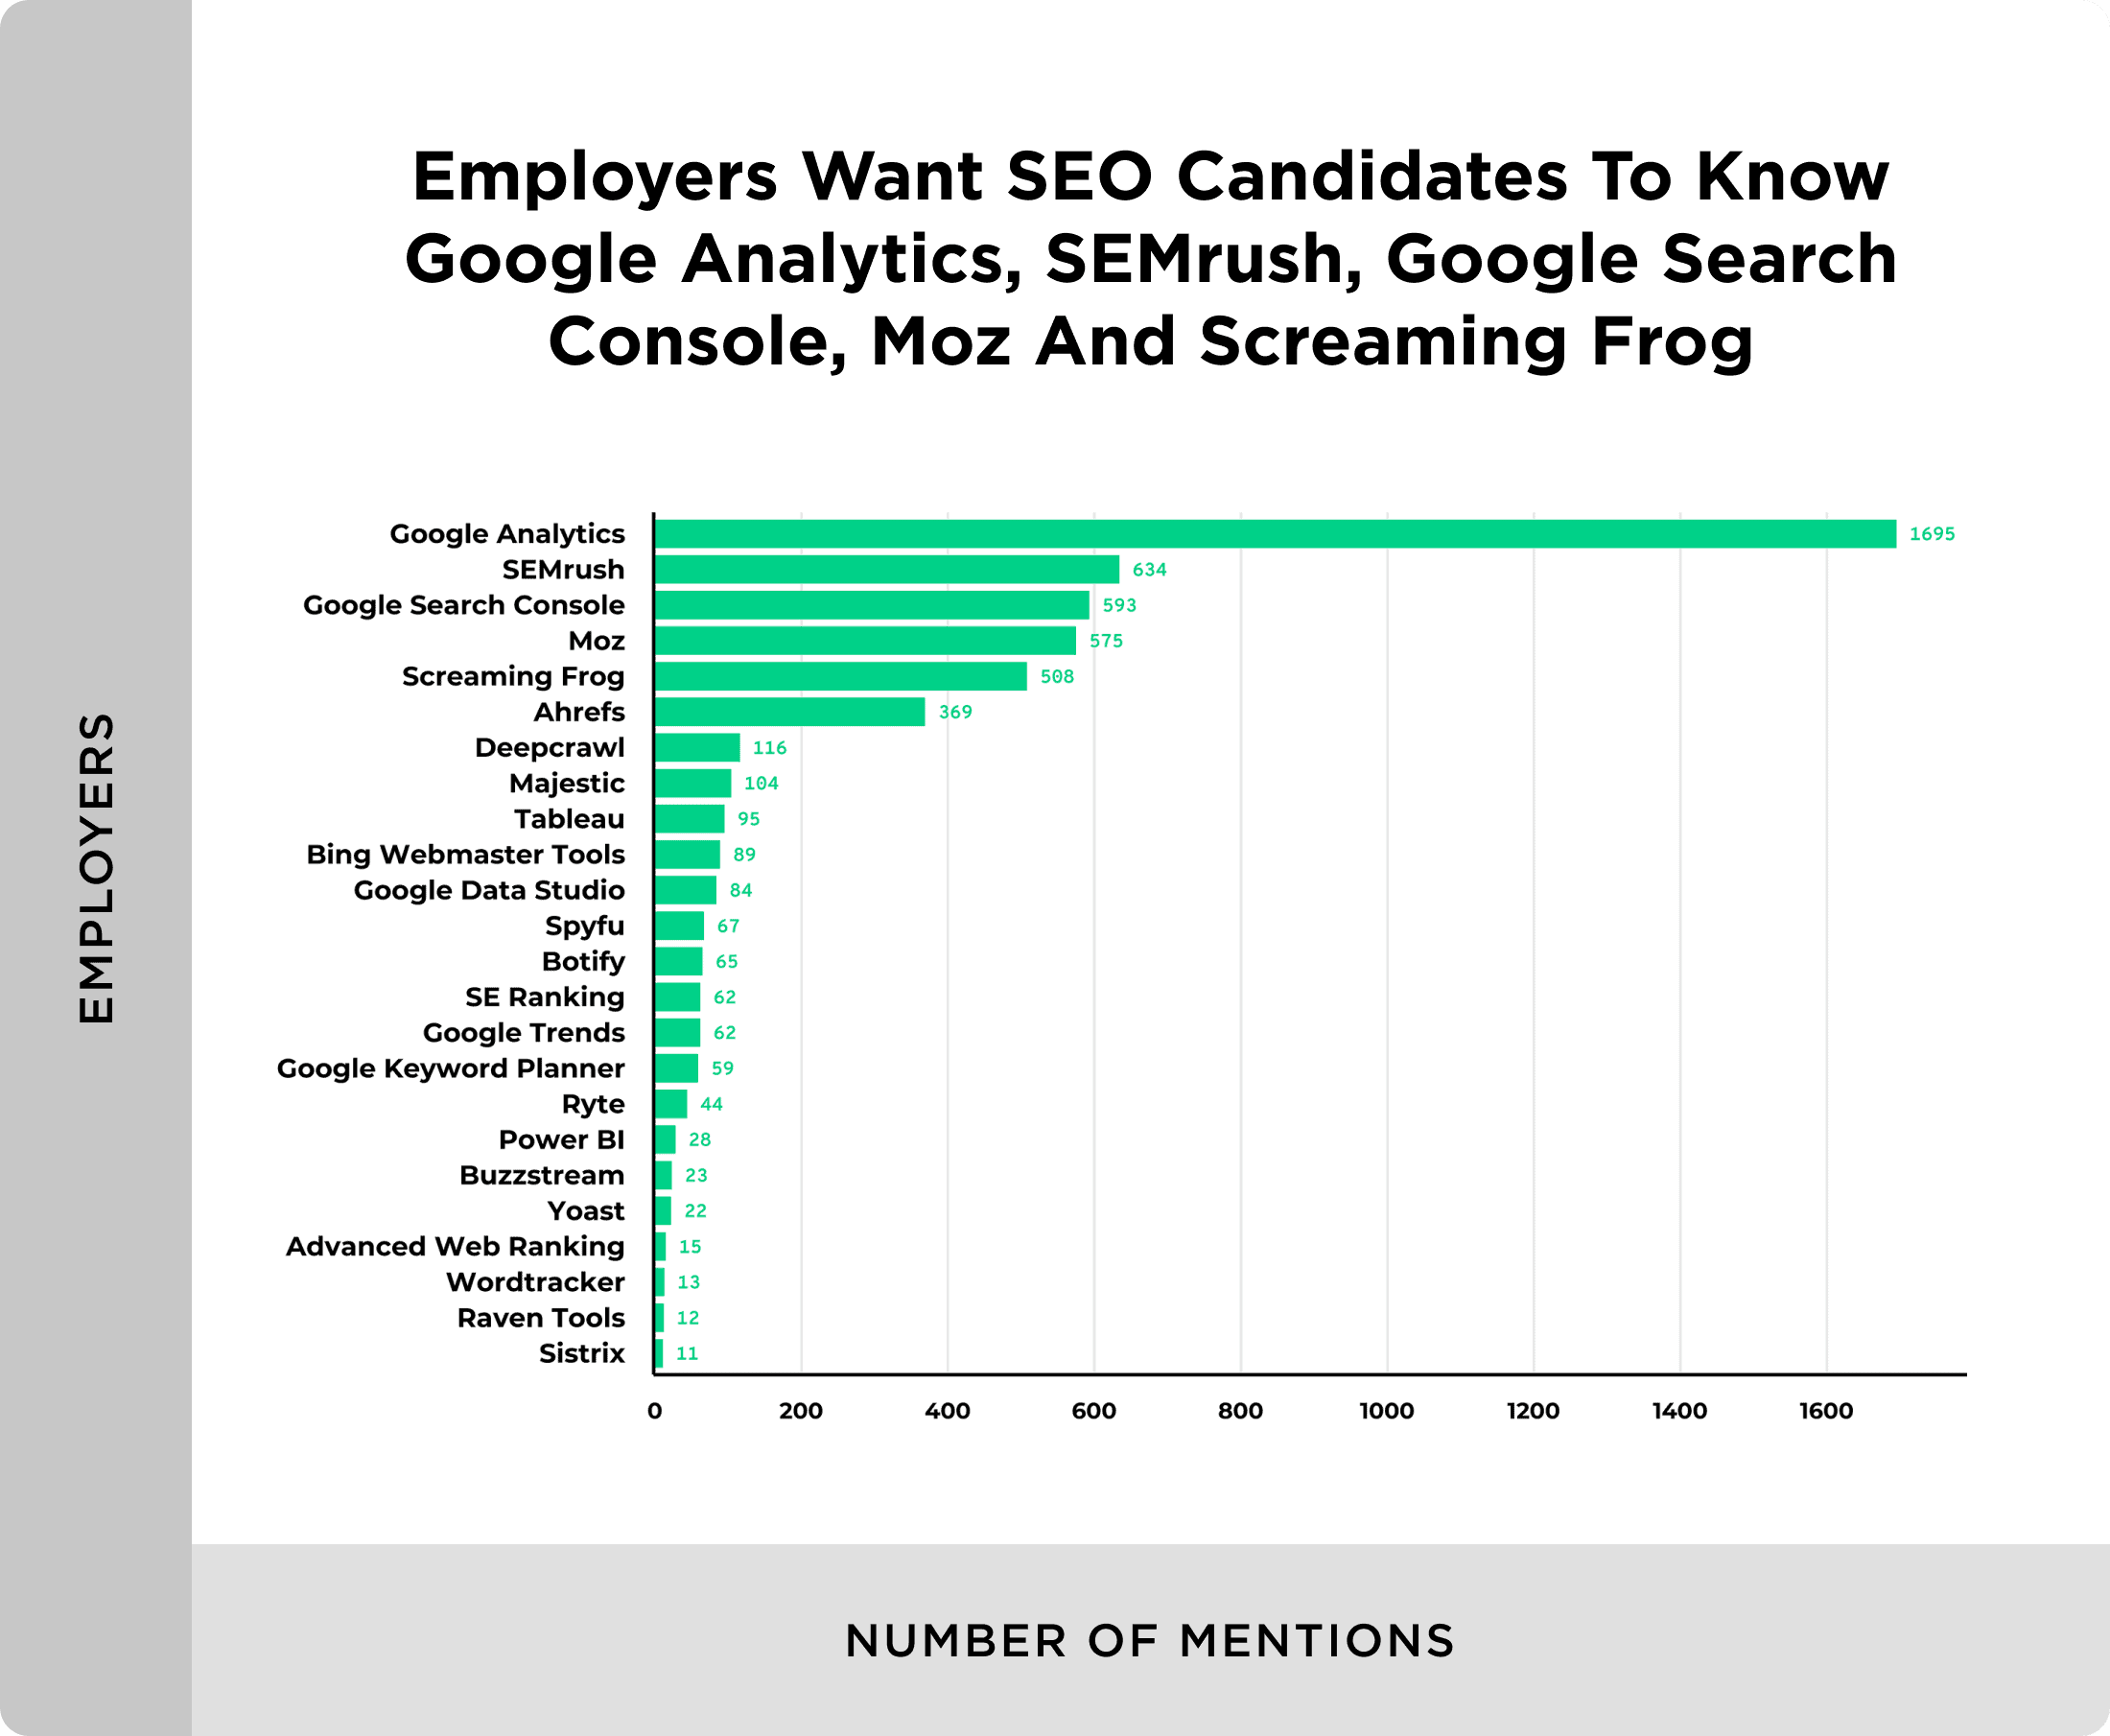 Tools that employers want SEO hires to use